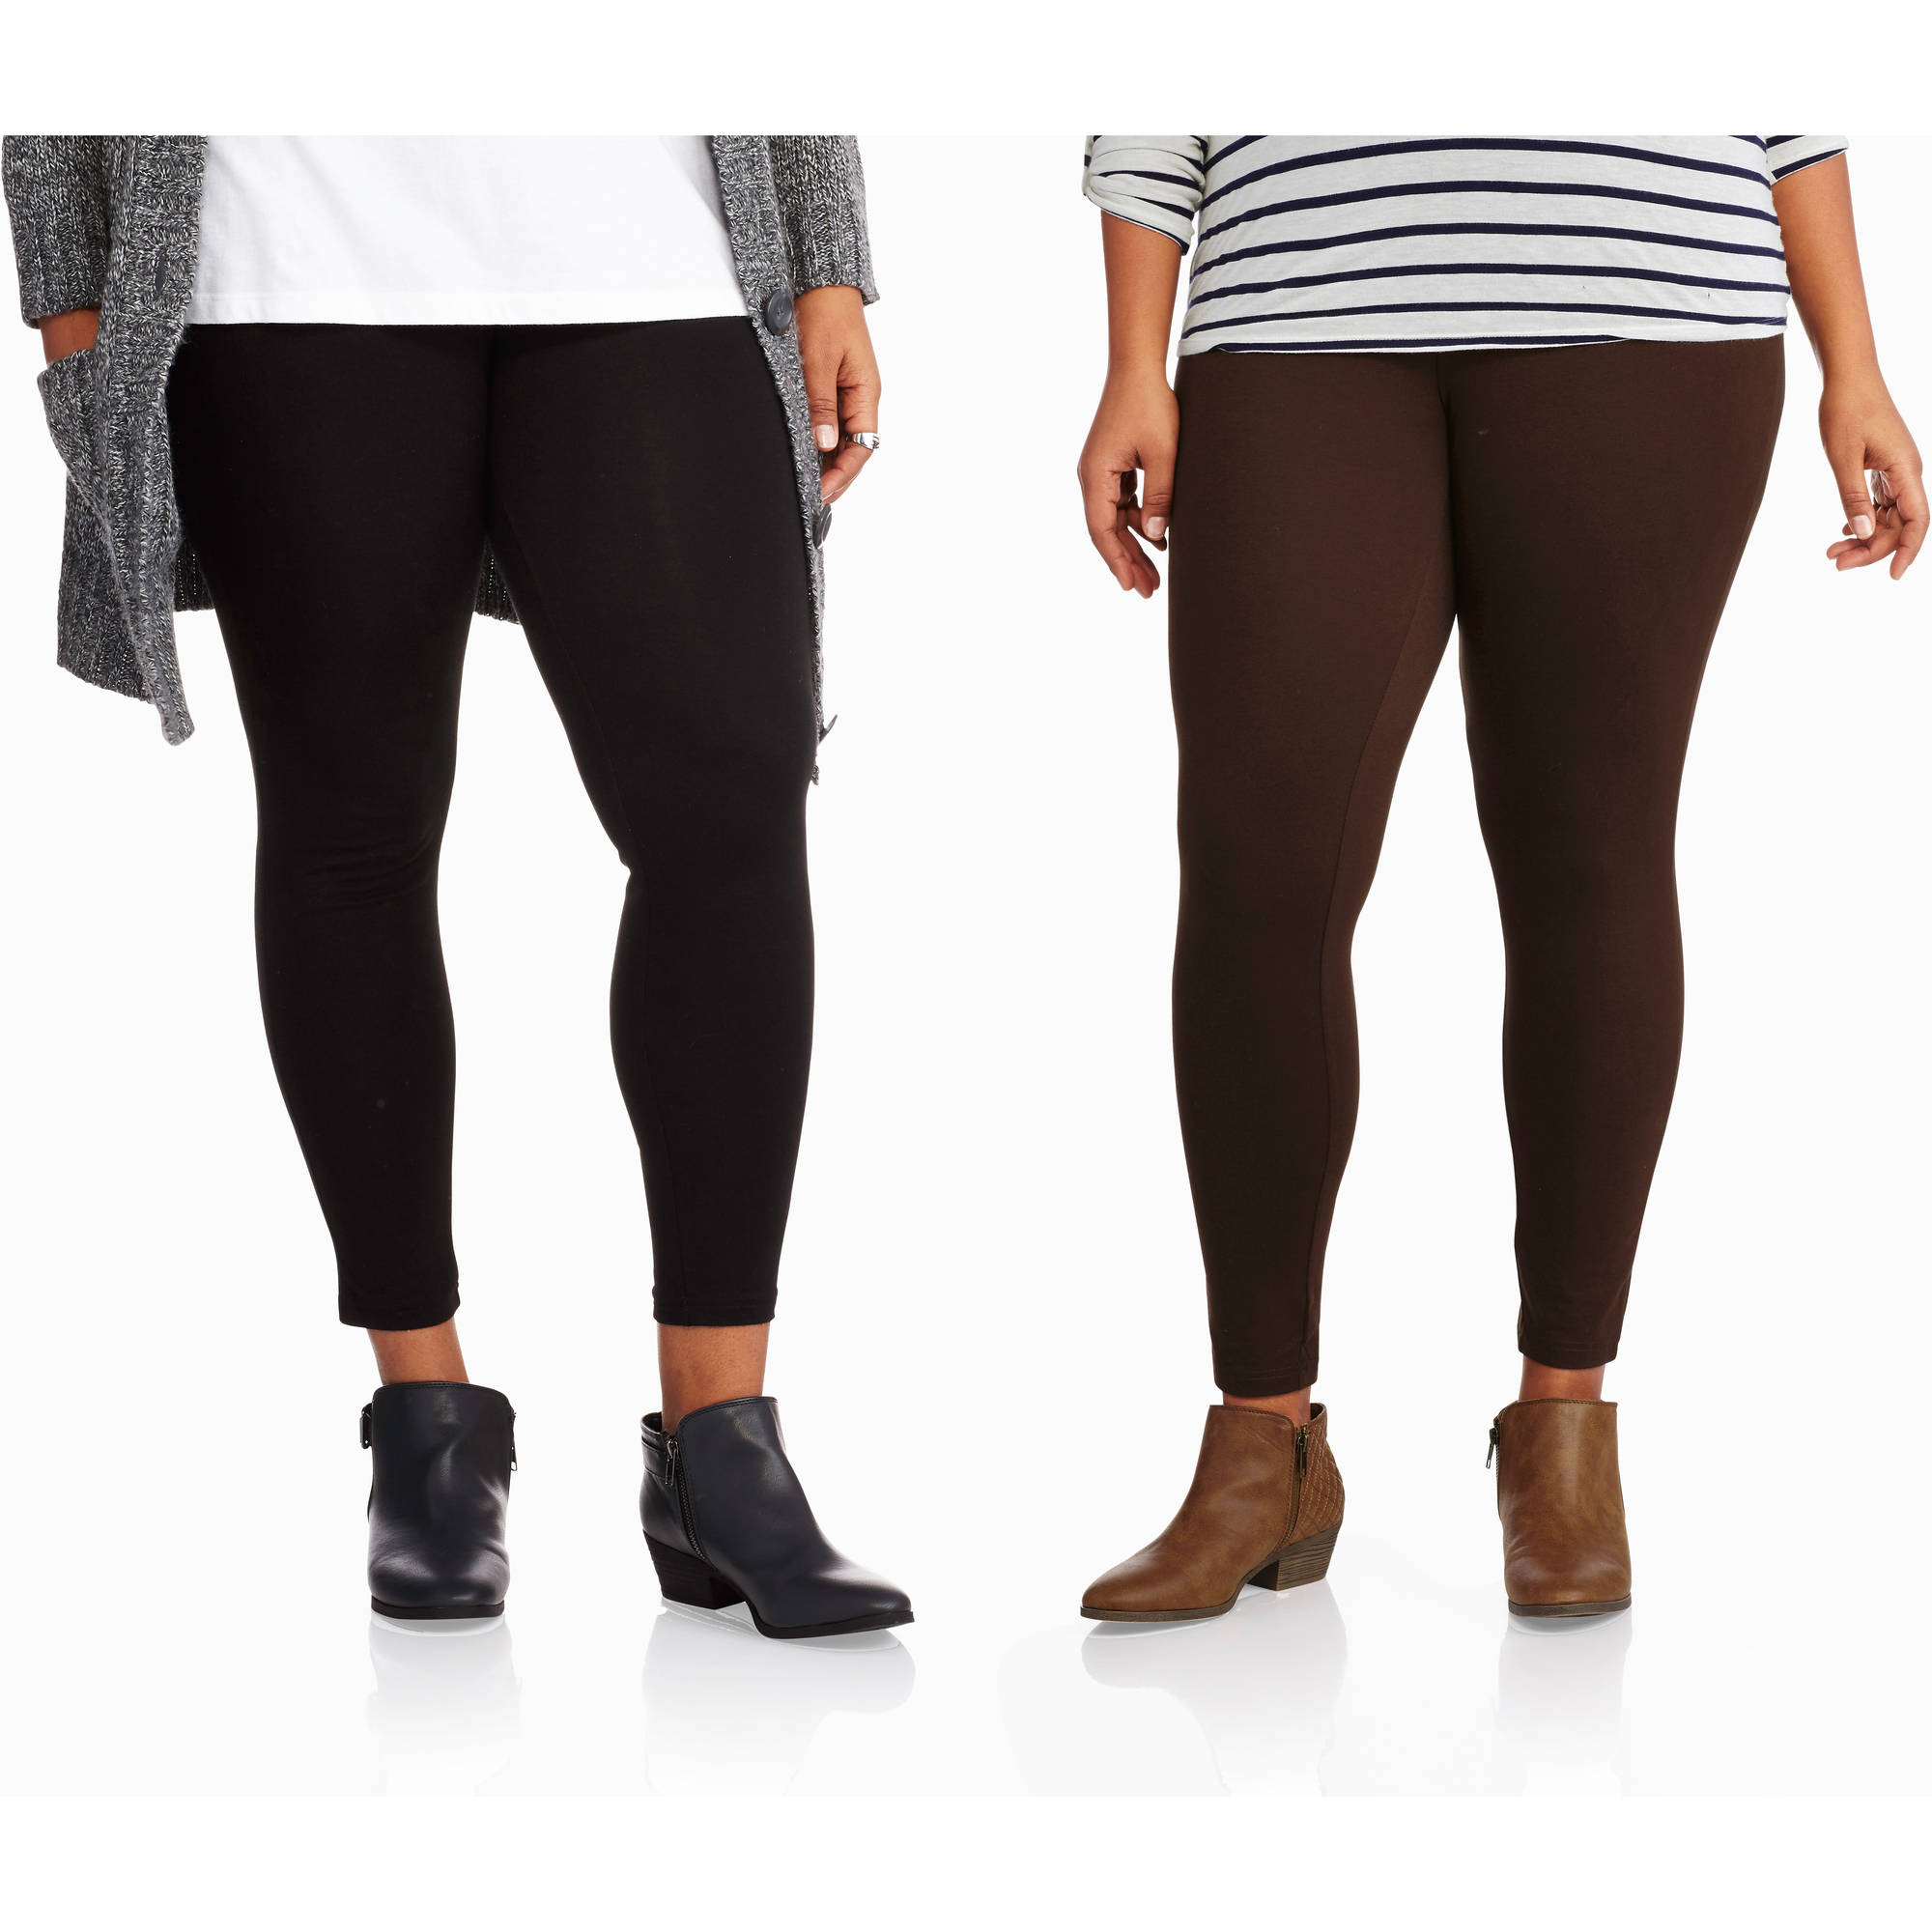 Faded Glory Women's Plus-Size Essential Knit Leggings, 2pk